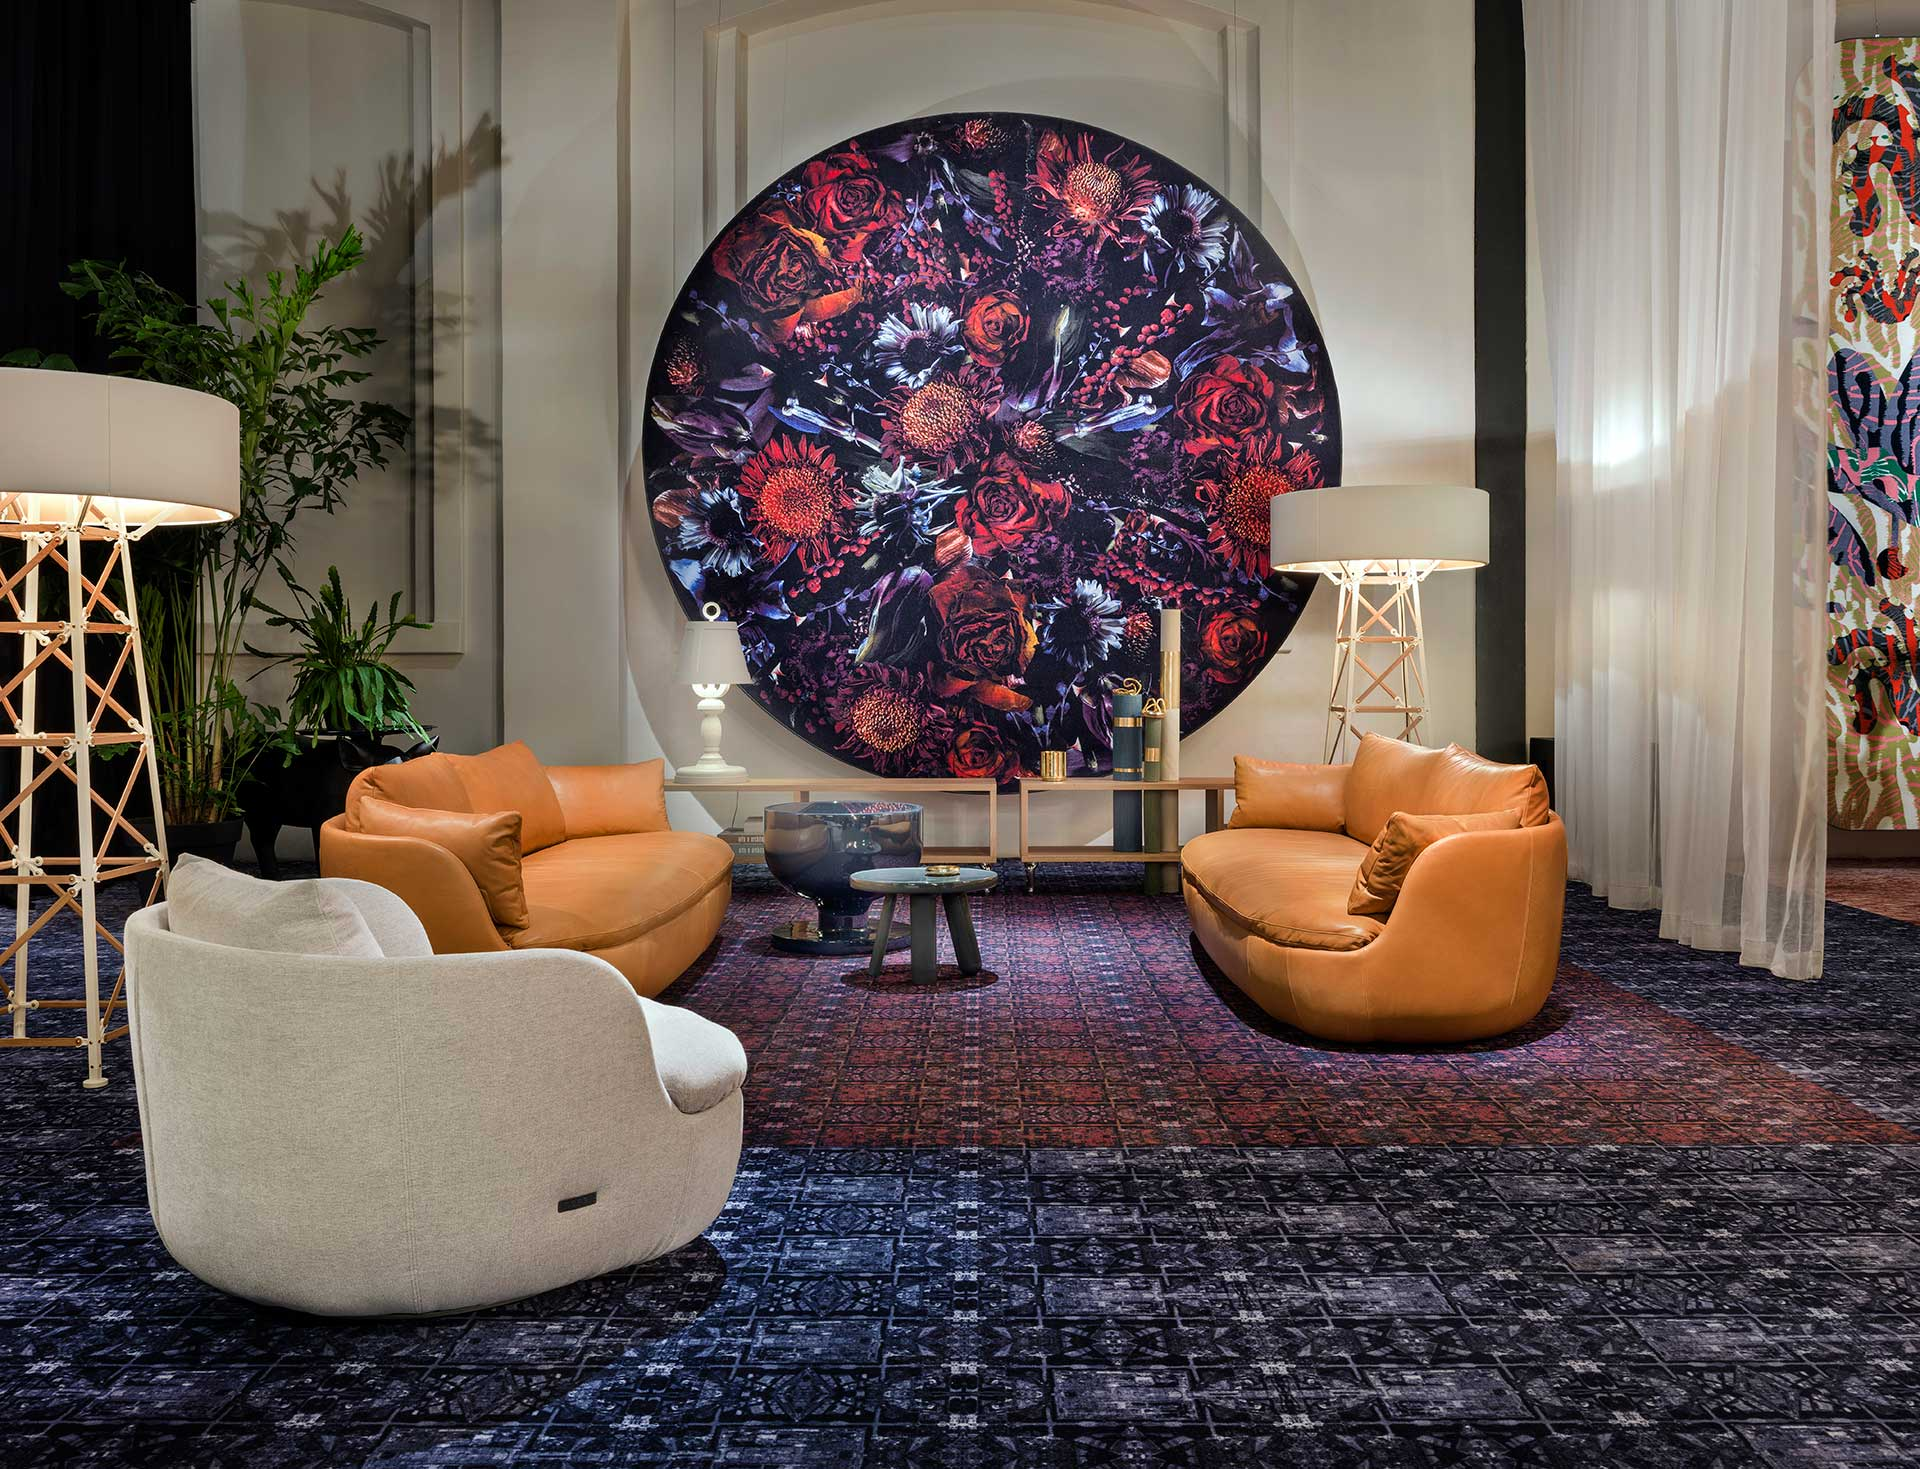 In Milan in 2016, Moooi  Bart sofas ,  Construction lamps  and a  Moooi Carpet on the wall. Photo Andrew Meredith for Moooi.